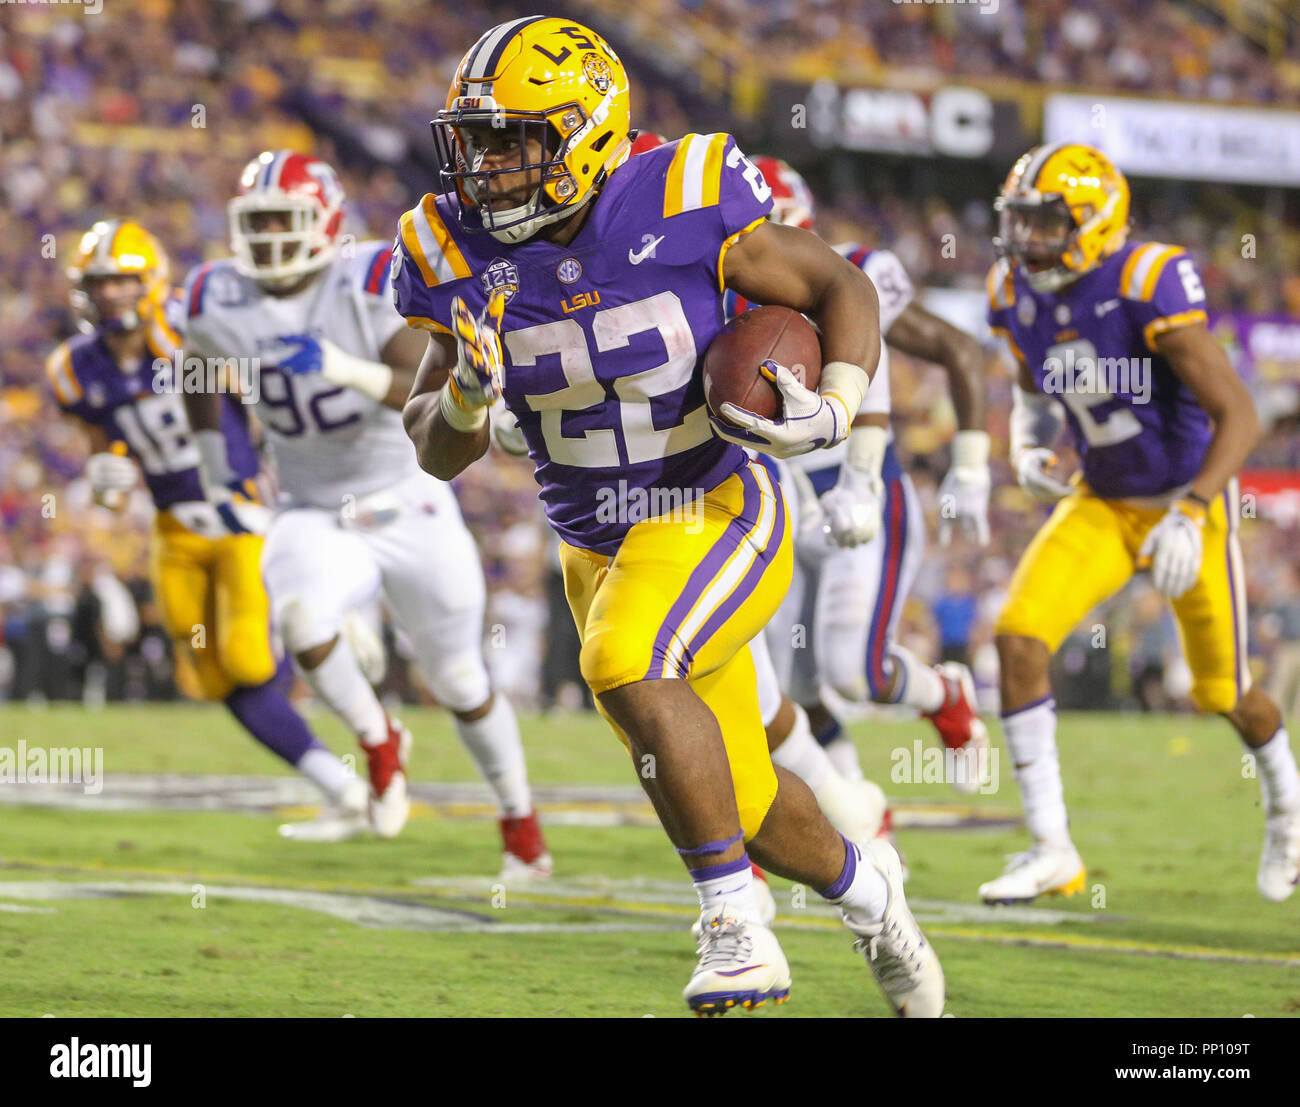 LSU s Clyde Edwards-Helaire  22 darts towards the end zone on a touchdown run  during the NCAA Football game between the LSU Tigrs and the Louisiana ... 1a4112615